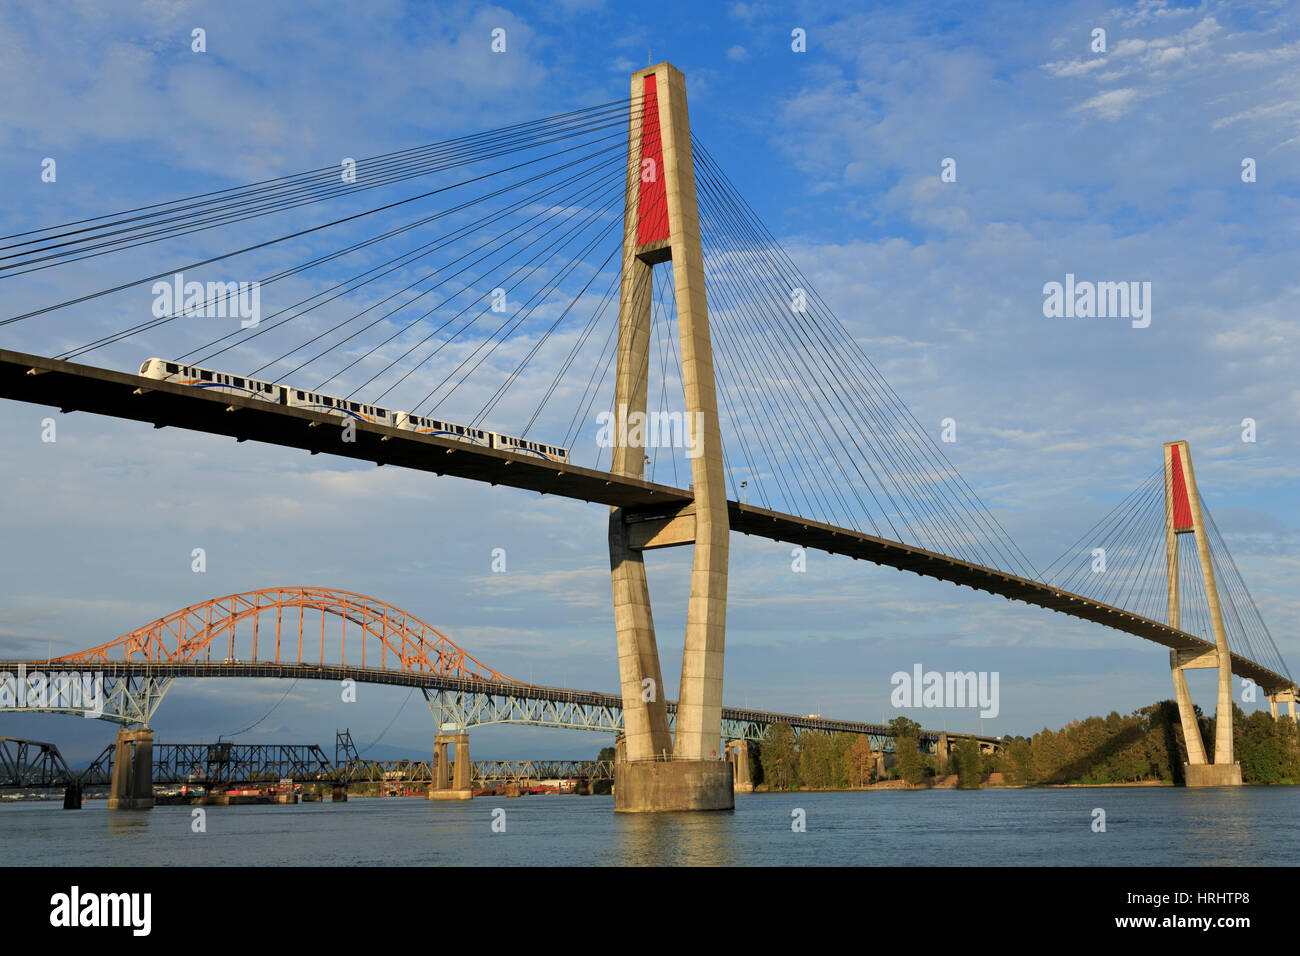 Skytrain Bridge, New Westminster, Vancouver Region, British Columbia, Canada, North America Stock Photo